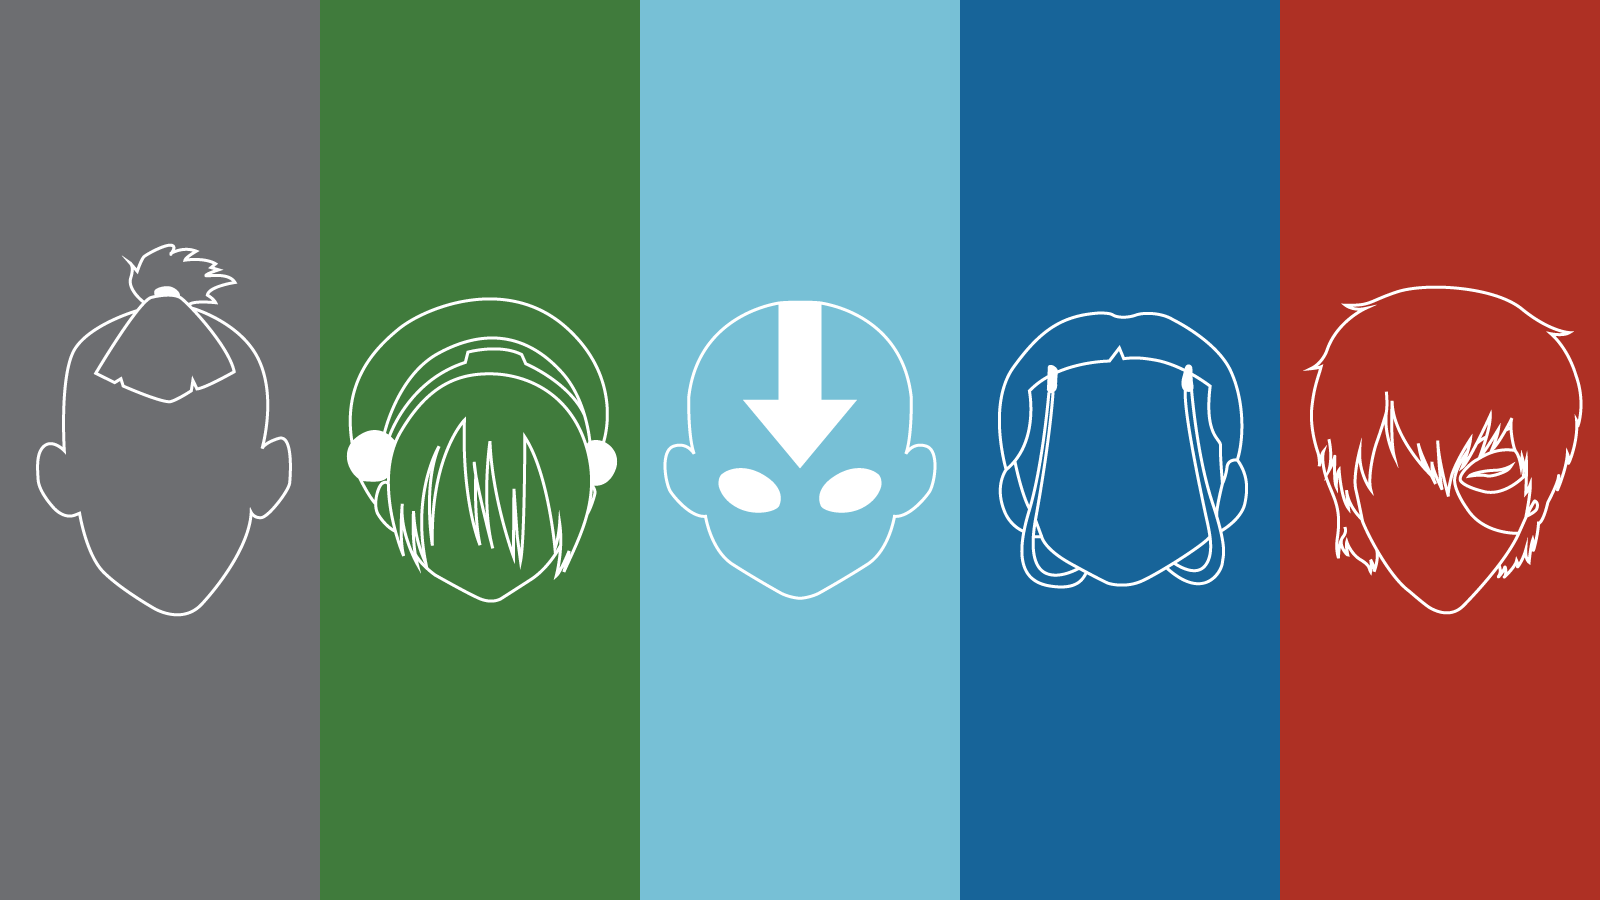 Avatar the Last Airbender Wallpapers Nathan Thomson Design 1600x900